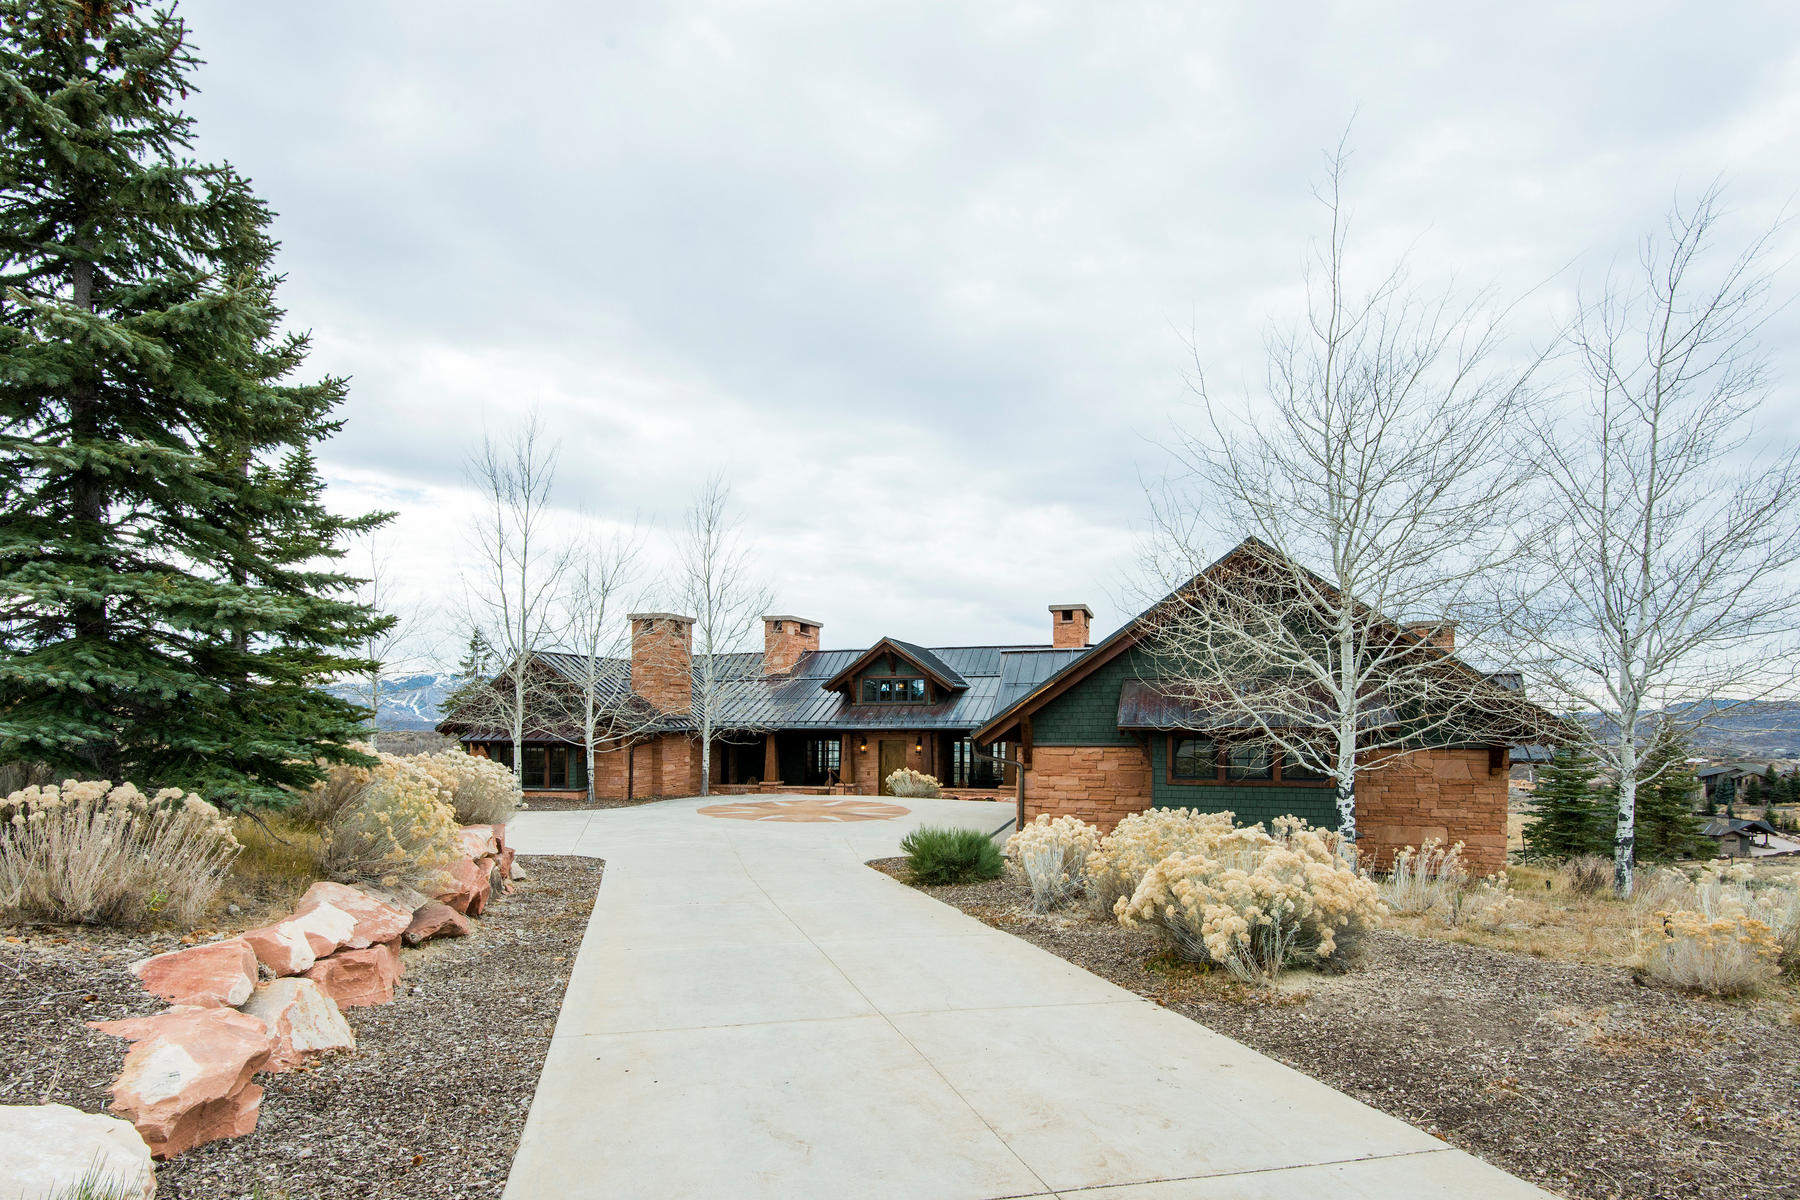 Additional photo for property listing at Mountain Traditional Home with Sweeping Views of the Golf Course and Ski Resorts 8725 N Promontory Ranch Rd Park City, Utah 84098 United States